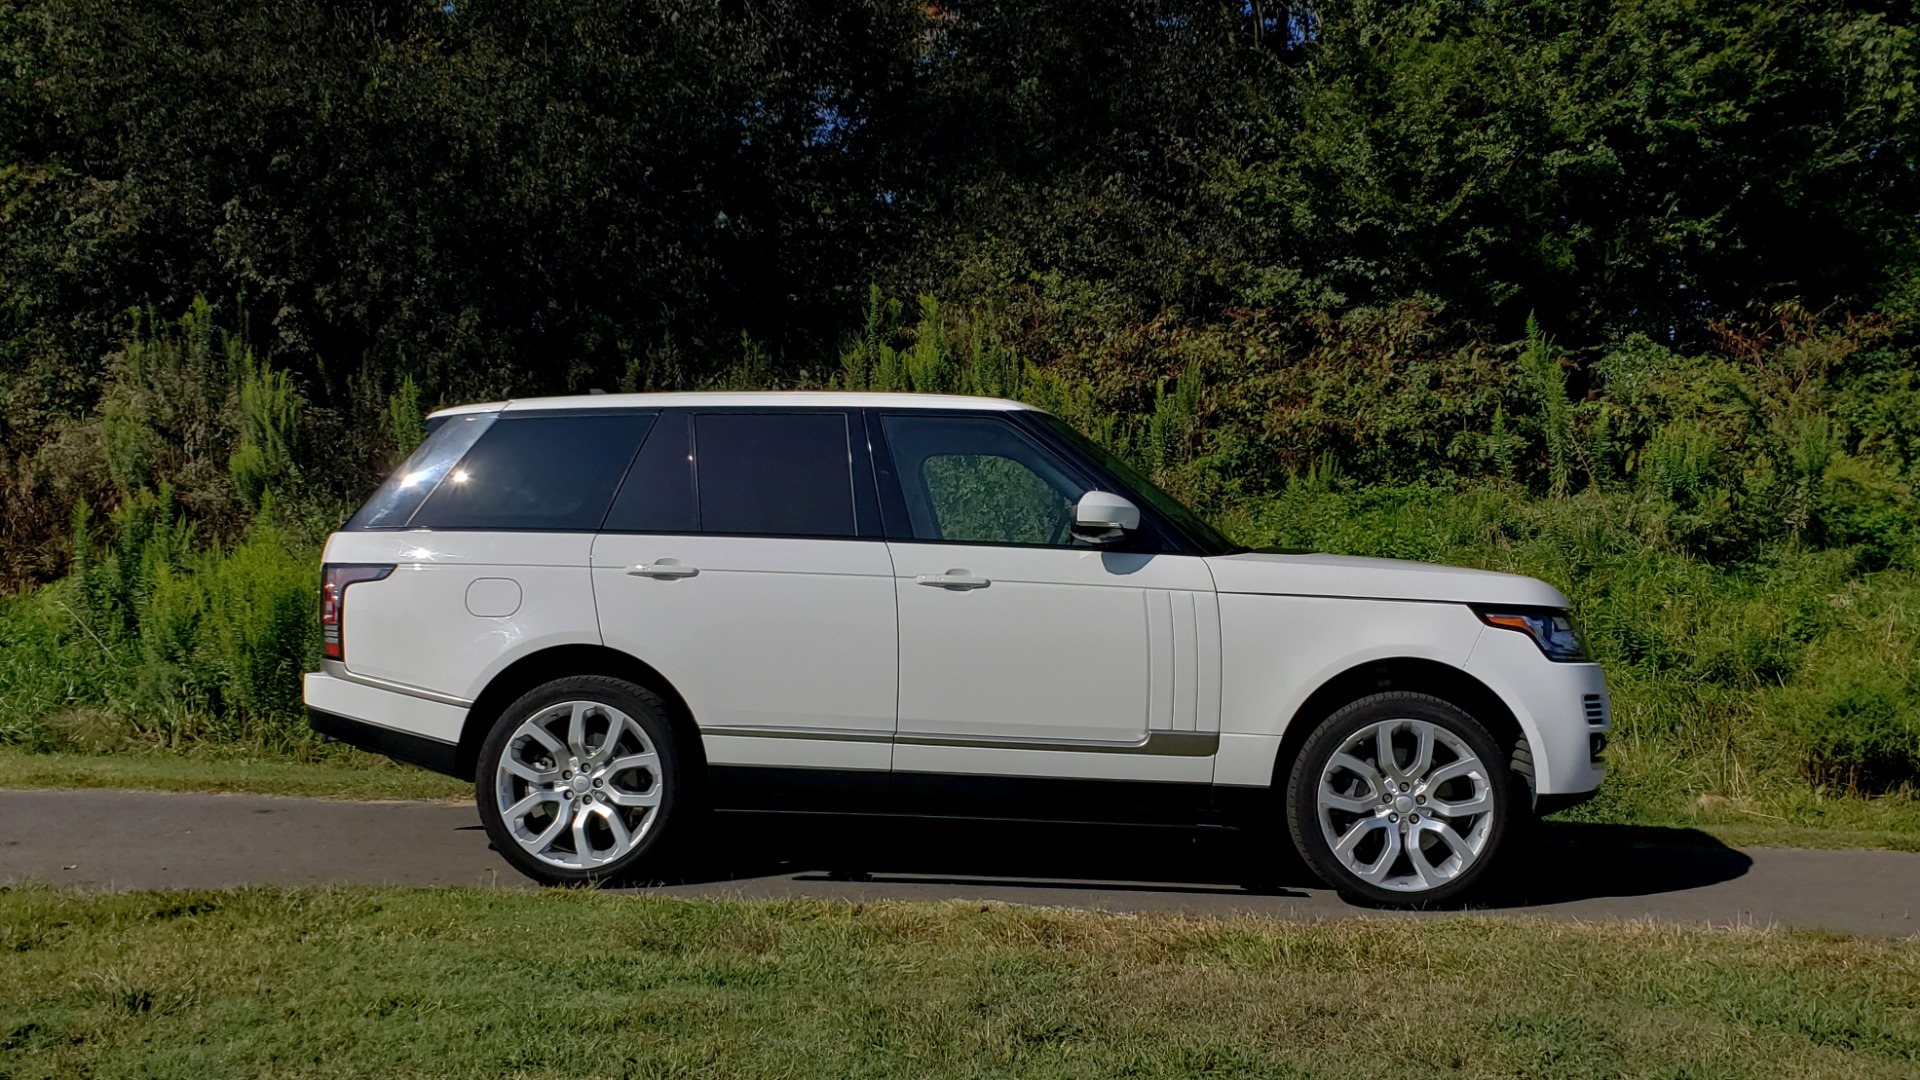 Used 2015 Land Rover Range Rover Supercharged for sale Sold at Formula Imports in Charlotte NC 28227 3